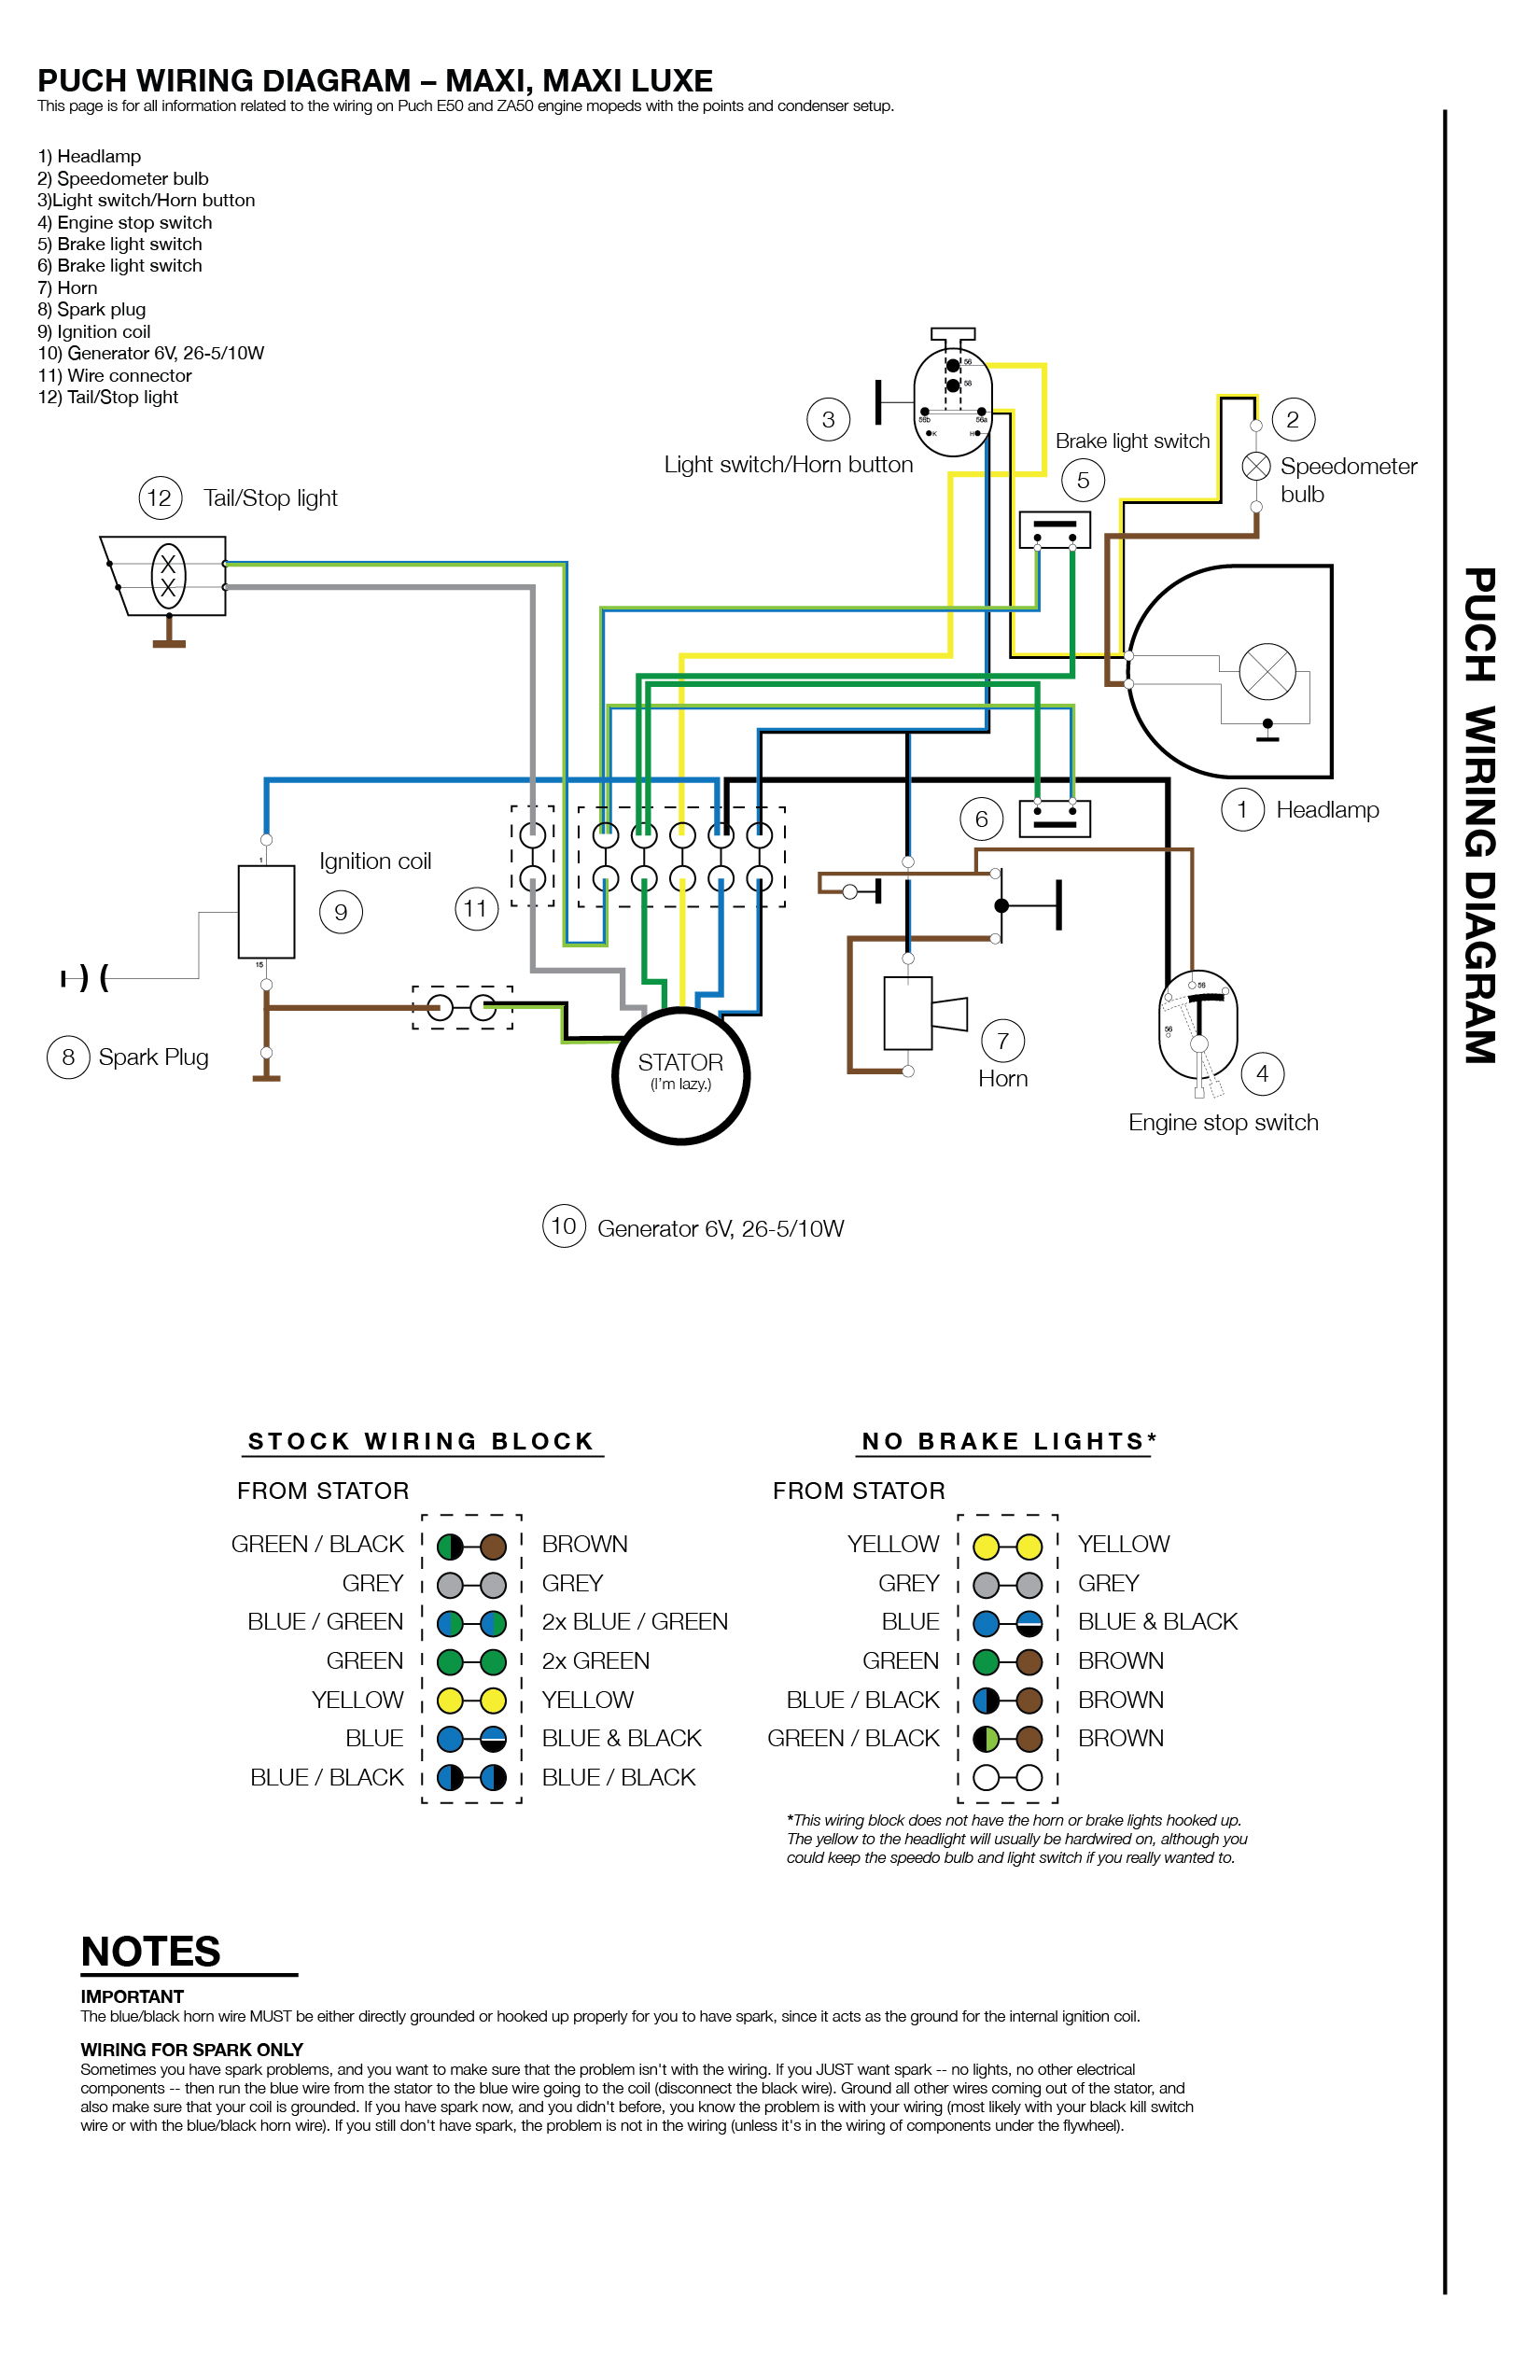 Puch_wiring 02 puch wiring moped wiki 1977 puch maxi wiring diagram at gsmx.co